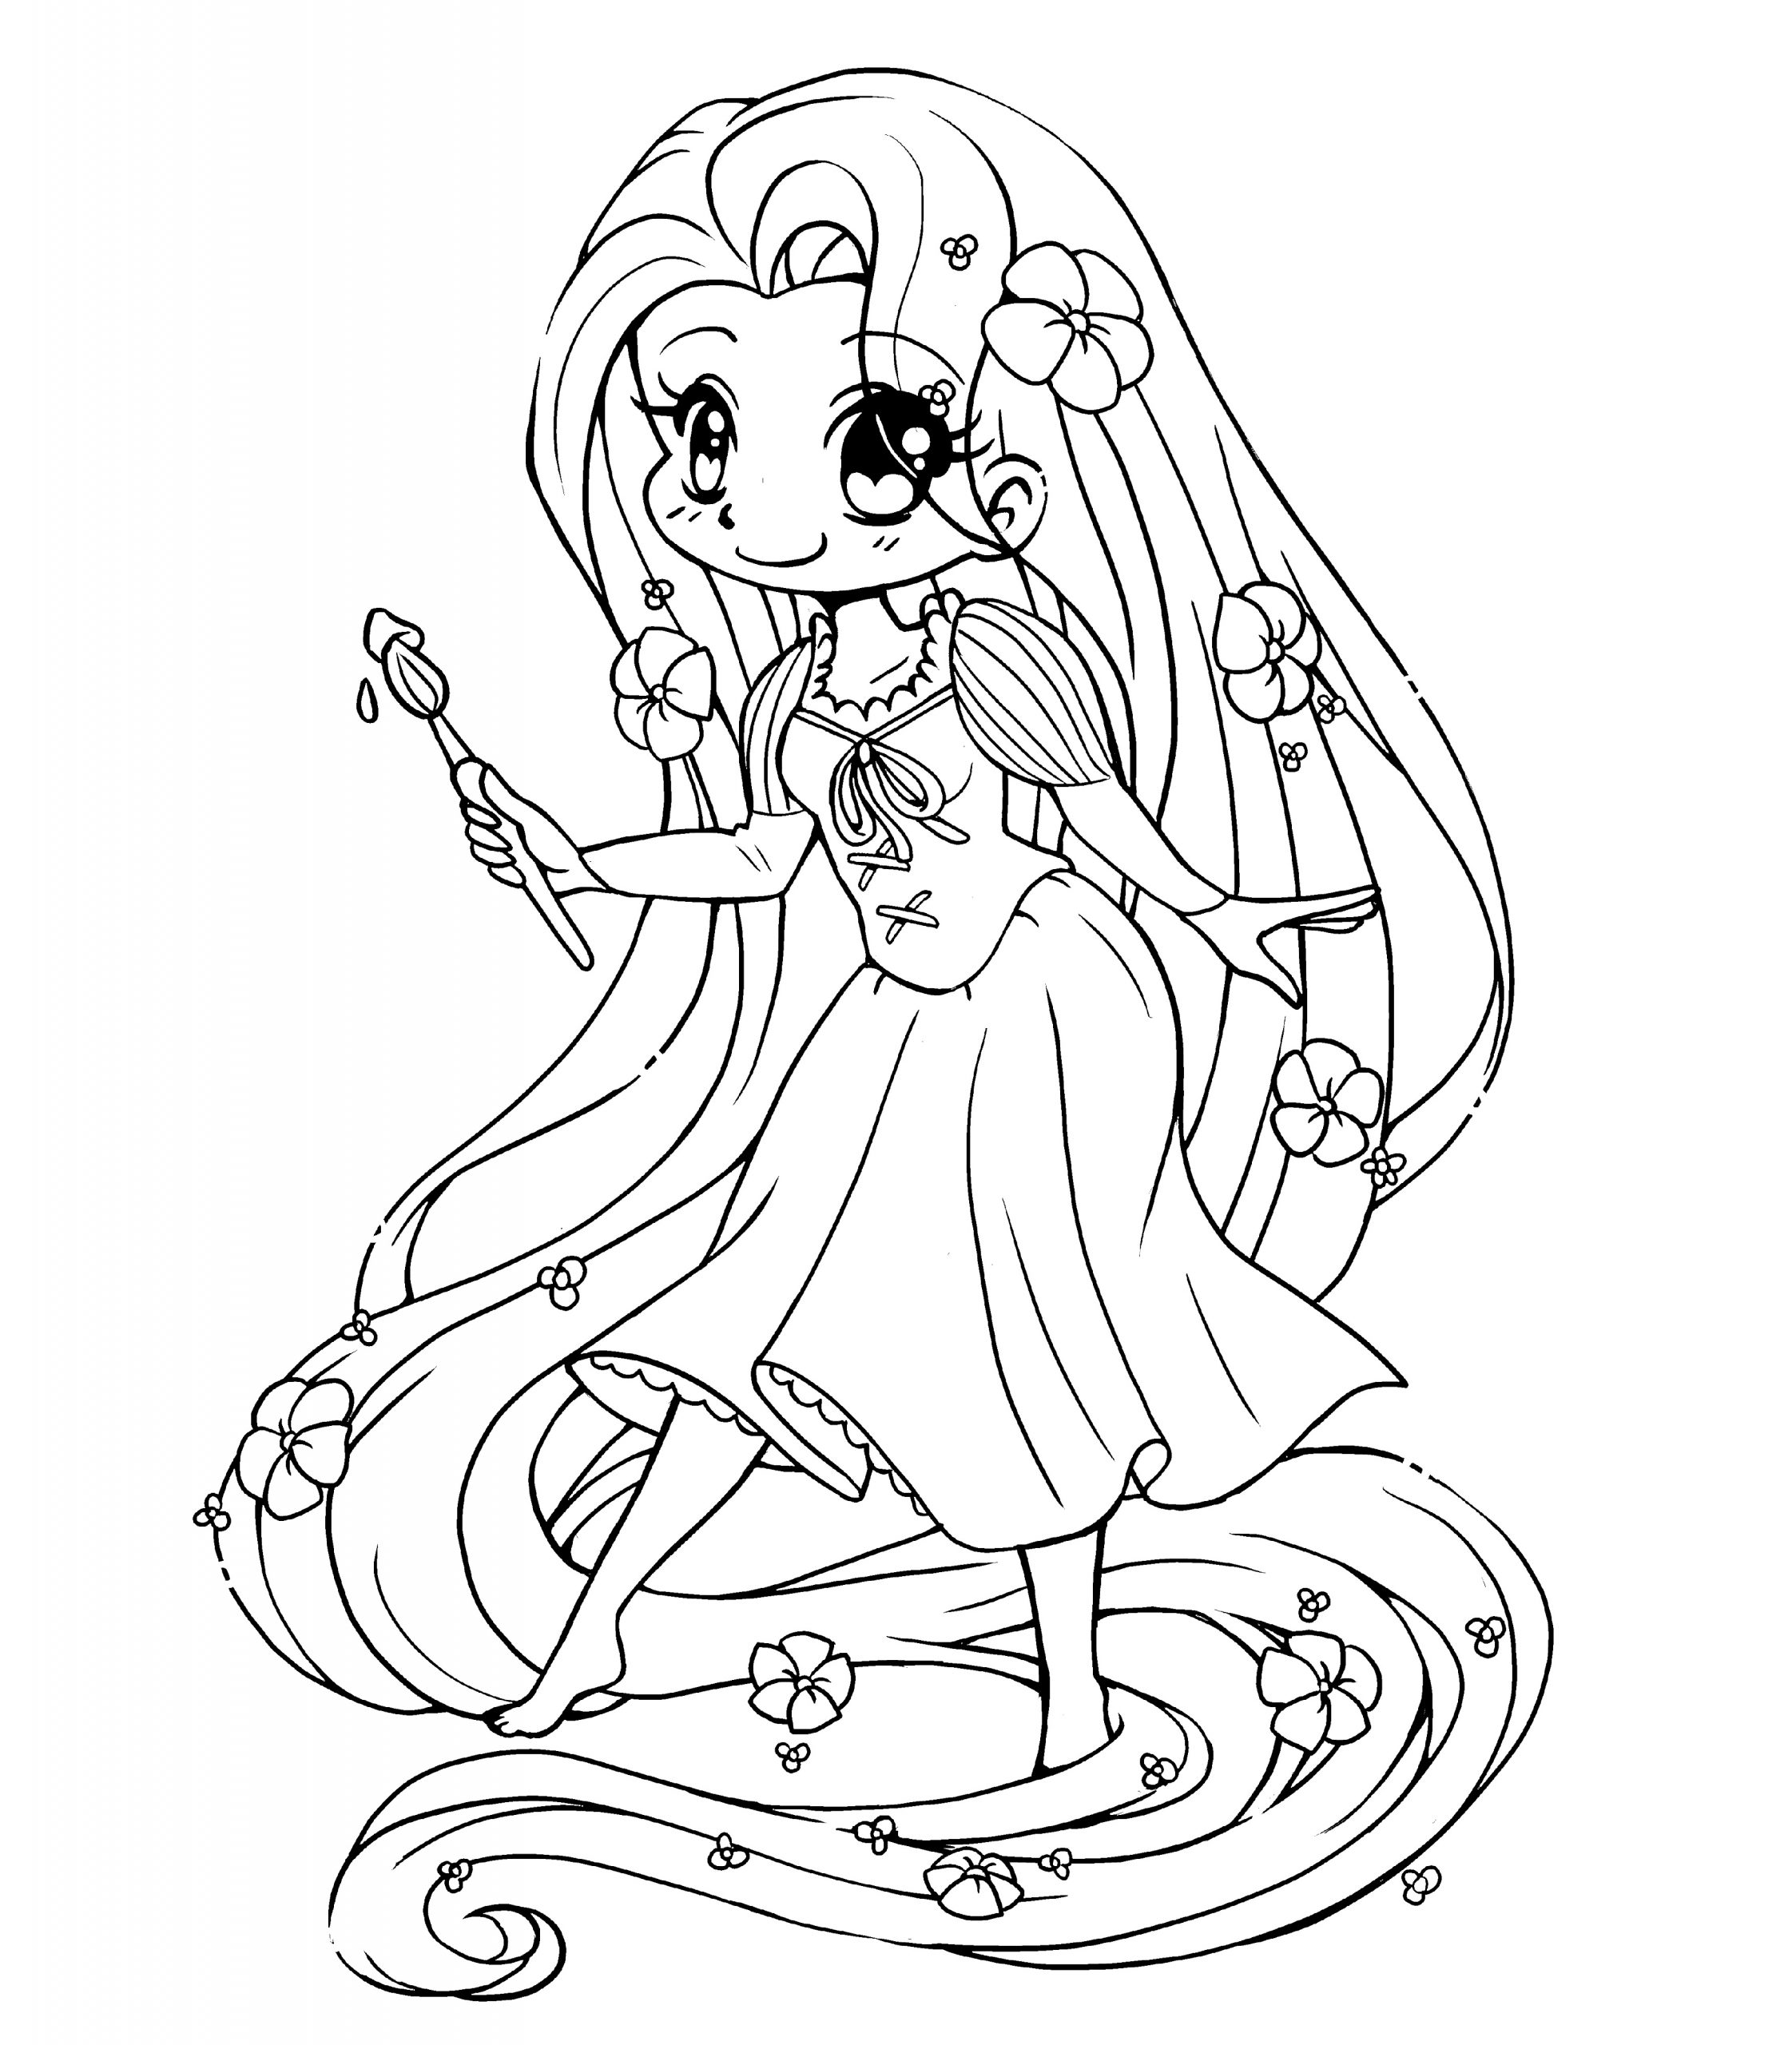 free rapunzel coloring pages rapunzel coloring pages best coloring pages for kids rapunzel free pages coloring